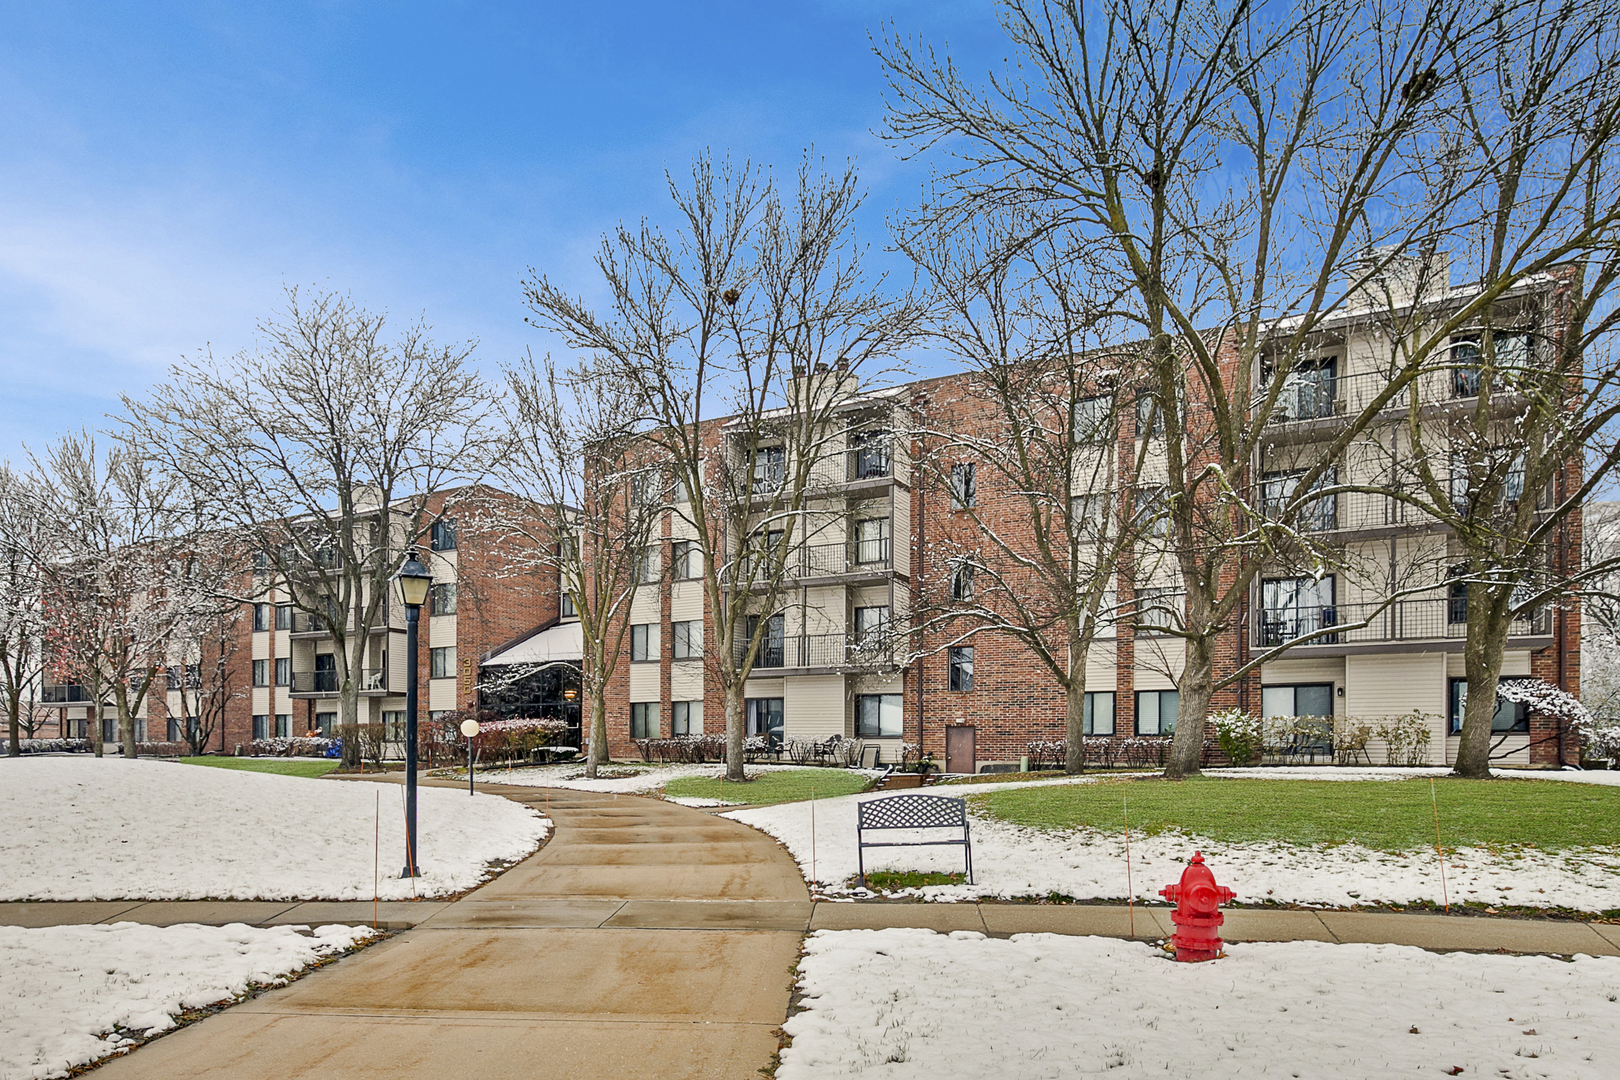 Welcome to 3050 Pheasant Creek where carefree condo living and great amenities combines with popular